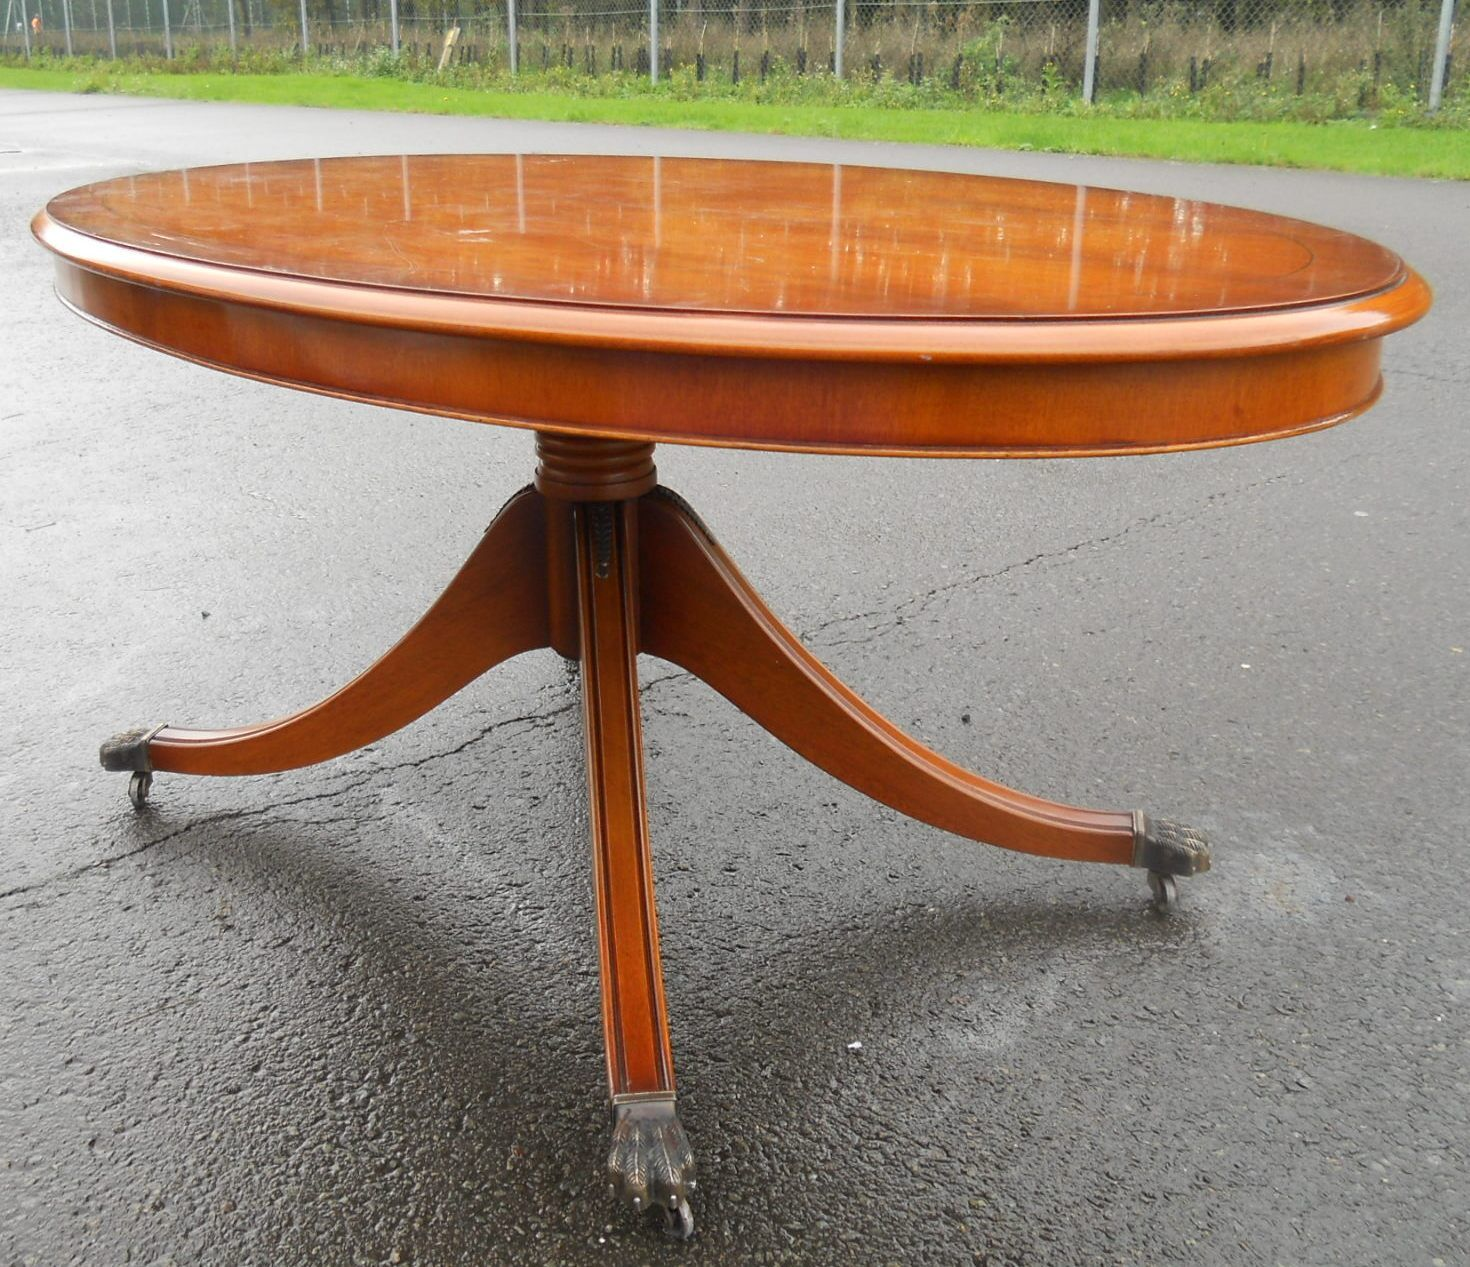 Oval Pedestal Coffee Table: Large Yew Oval Pedestal Coffee Table By Bradley